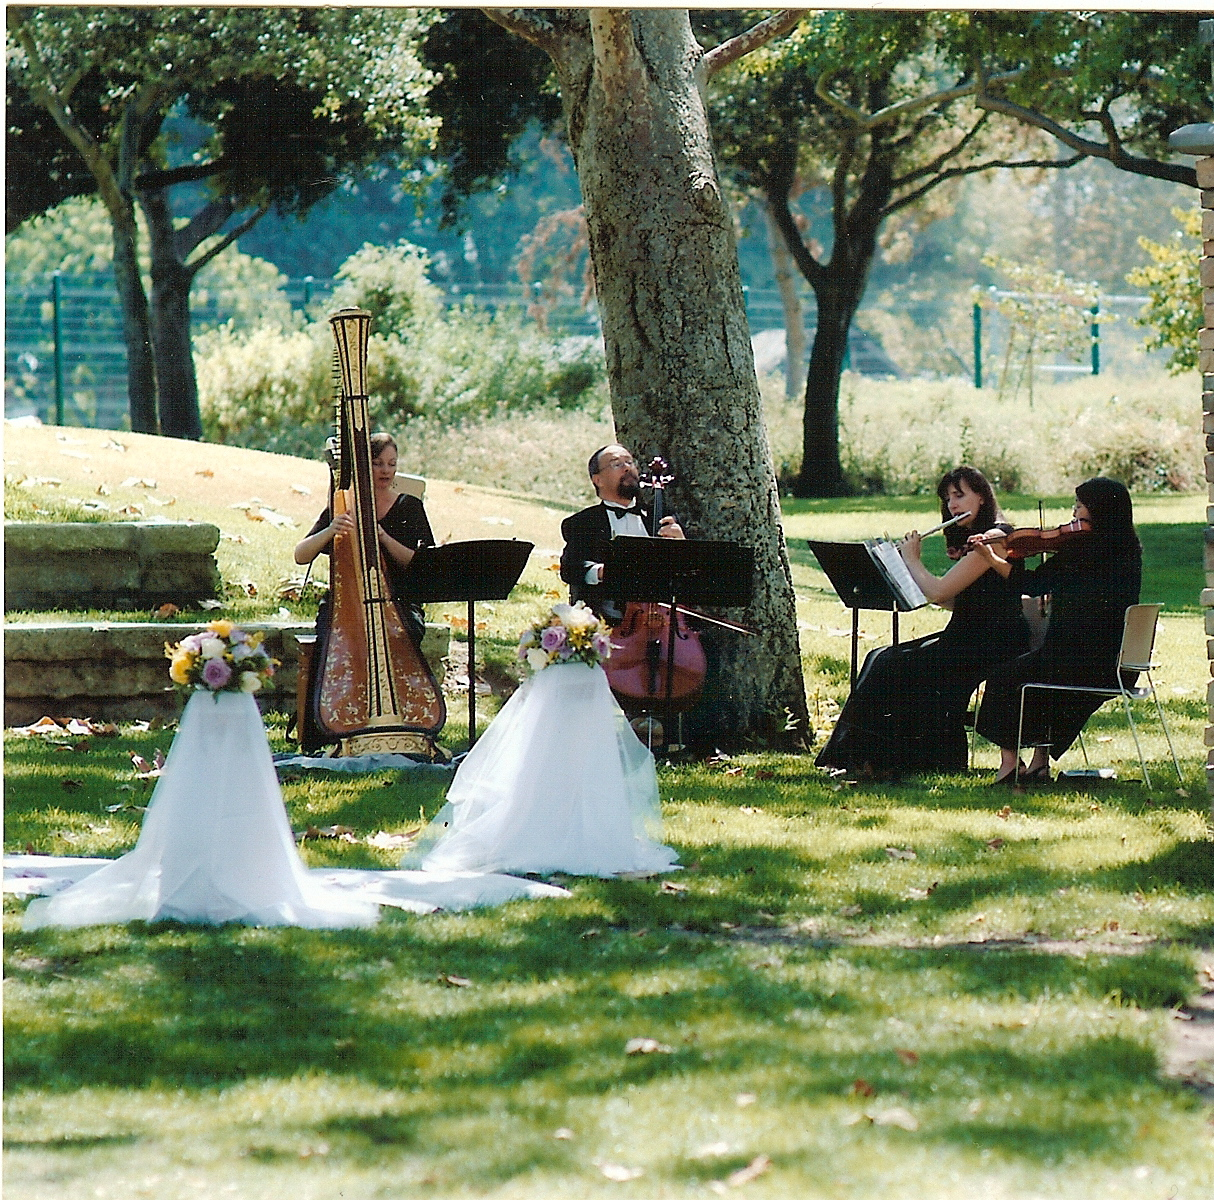 Elegant Music Live And Dj Dance For Weddings Parties In Los Angeles